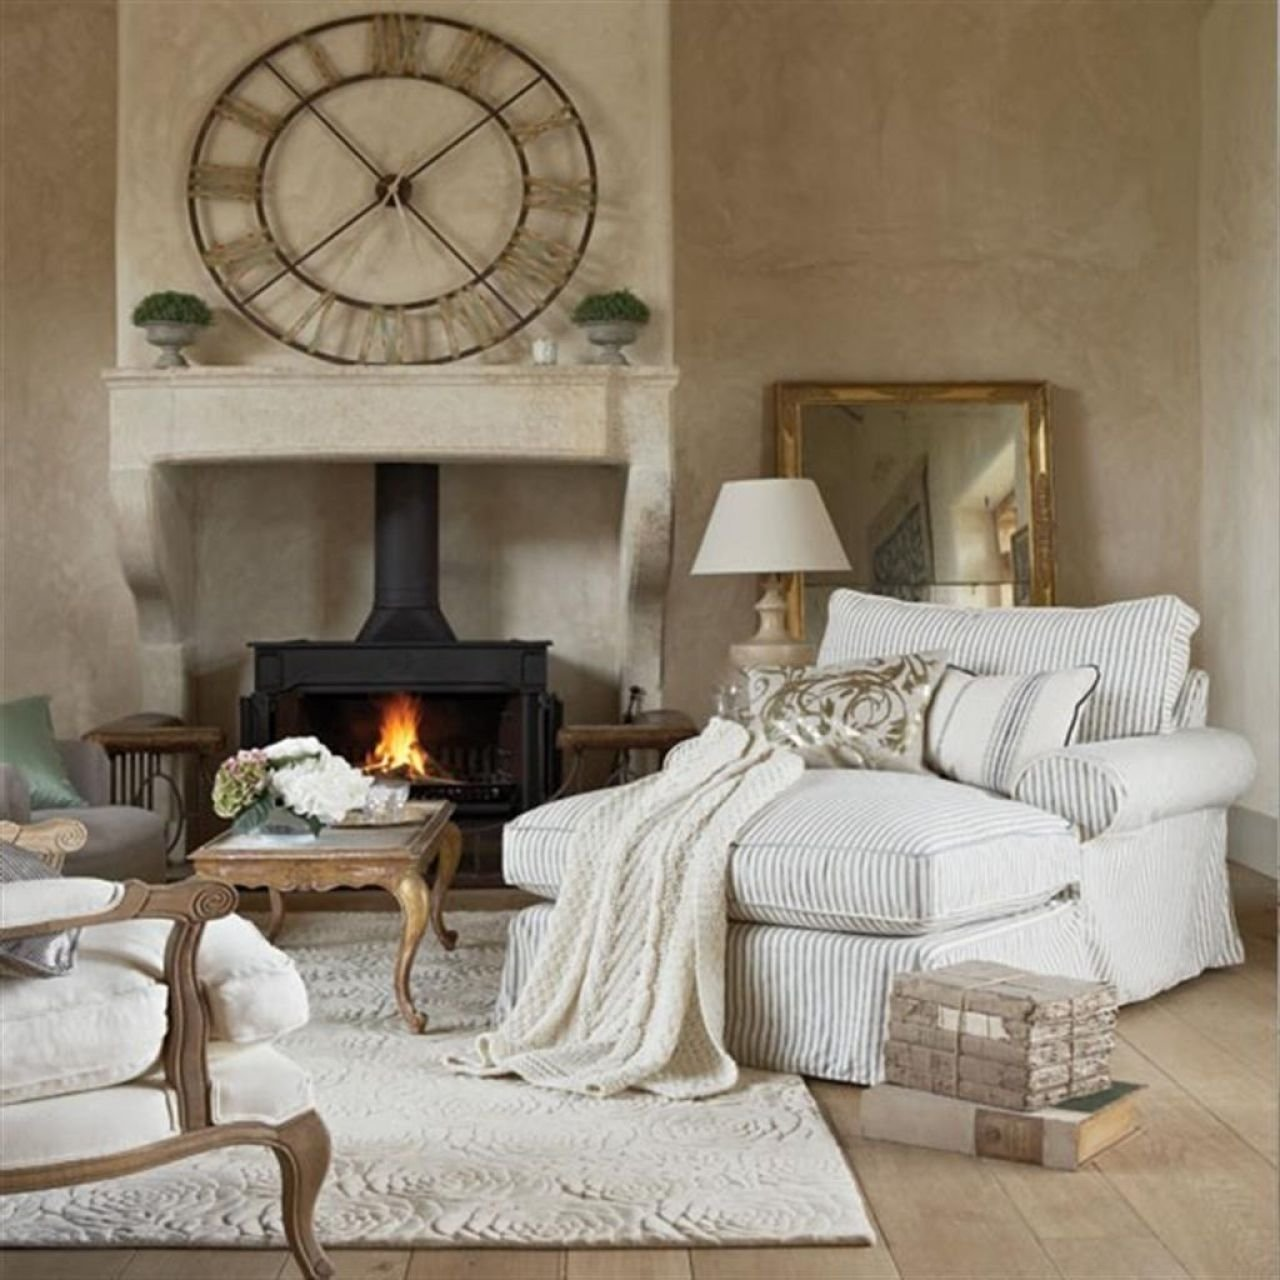 10 Stylish Country Decorating Ideas On A Budget french country decor ideas affordable rustic french country living 2021